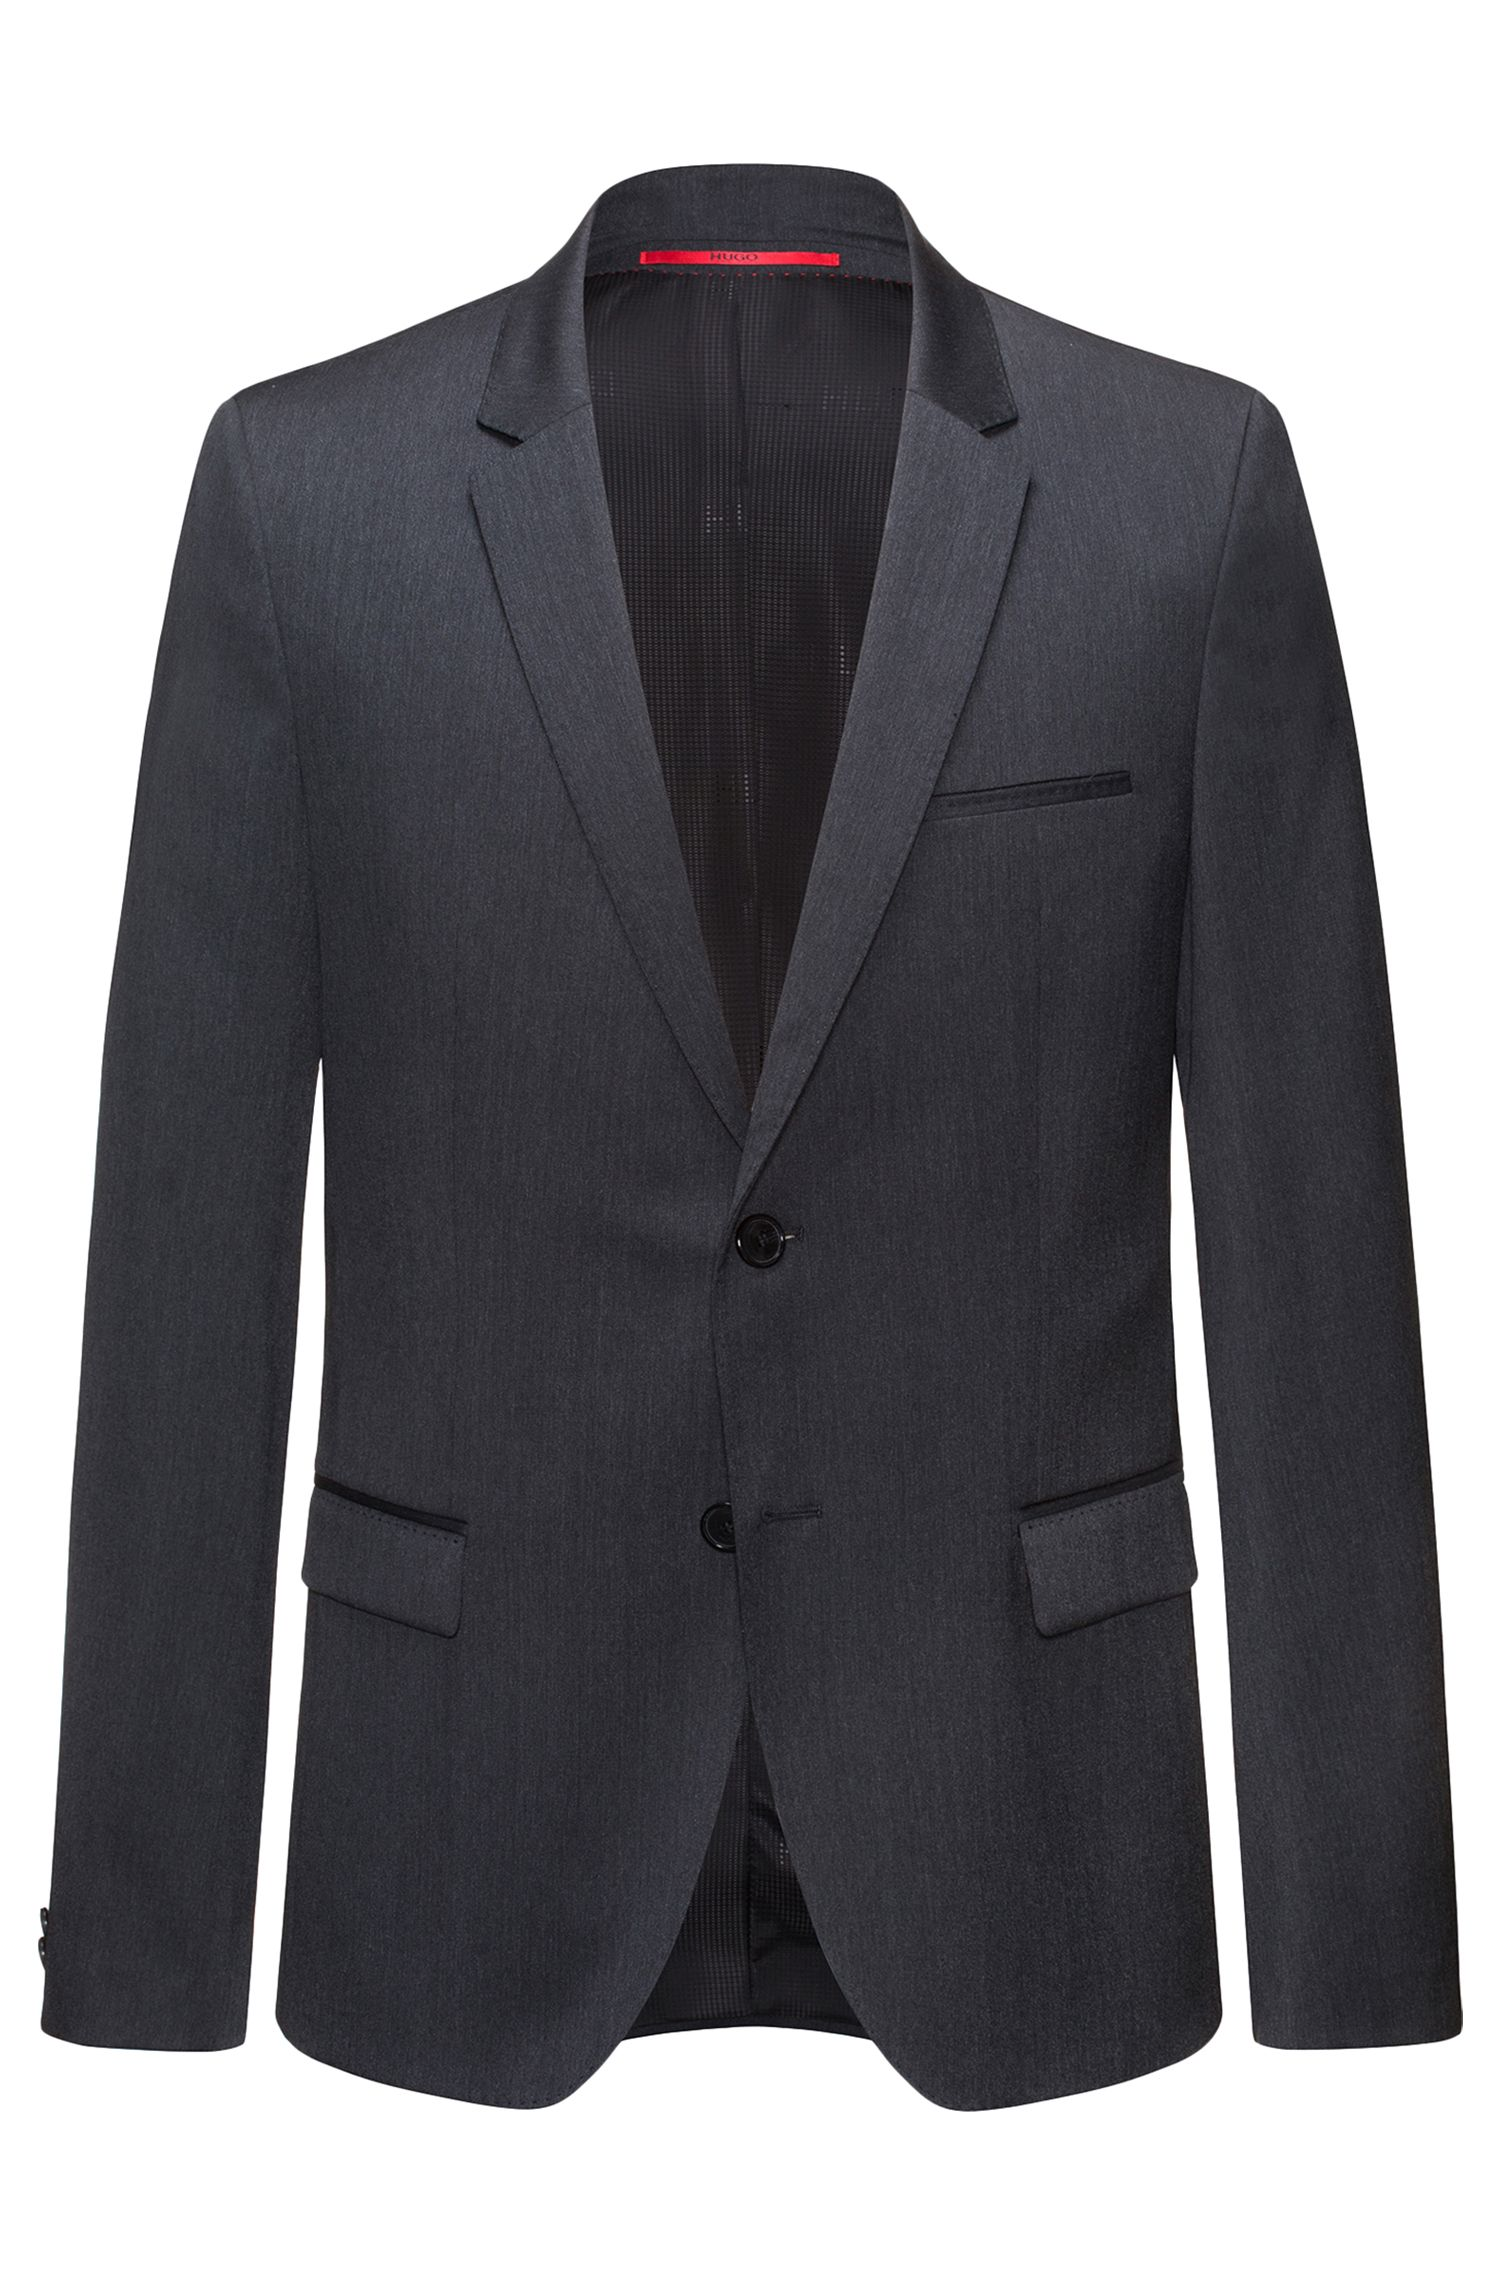 Extra-slim-fit jacket in virgin wool twill, Anthracite